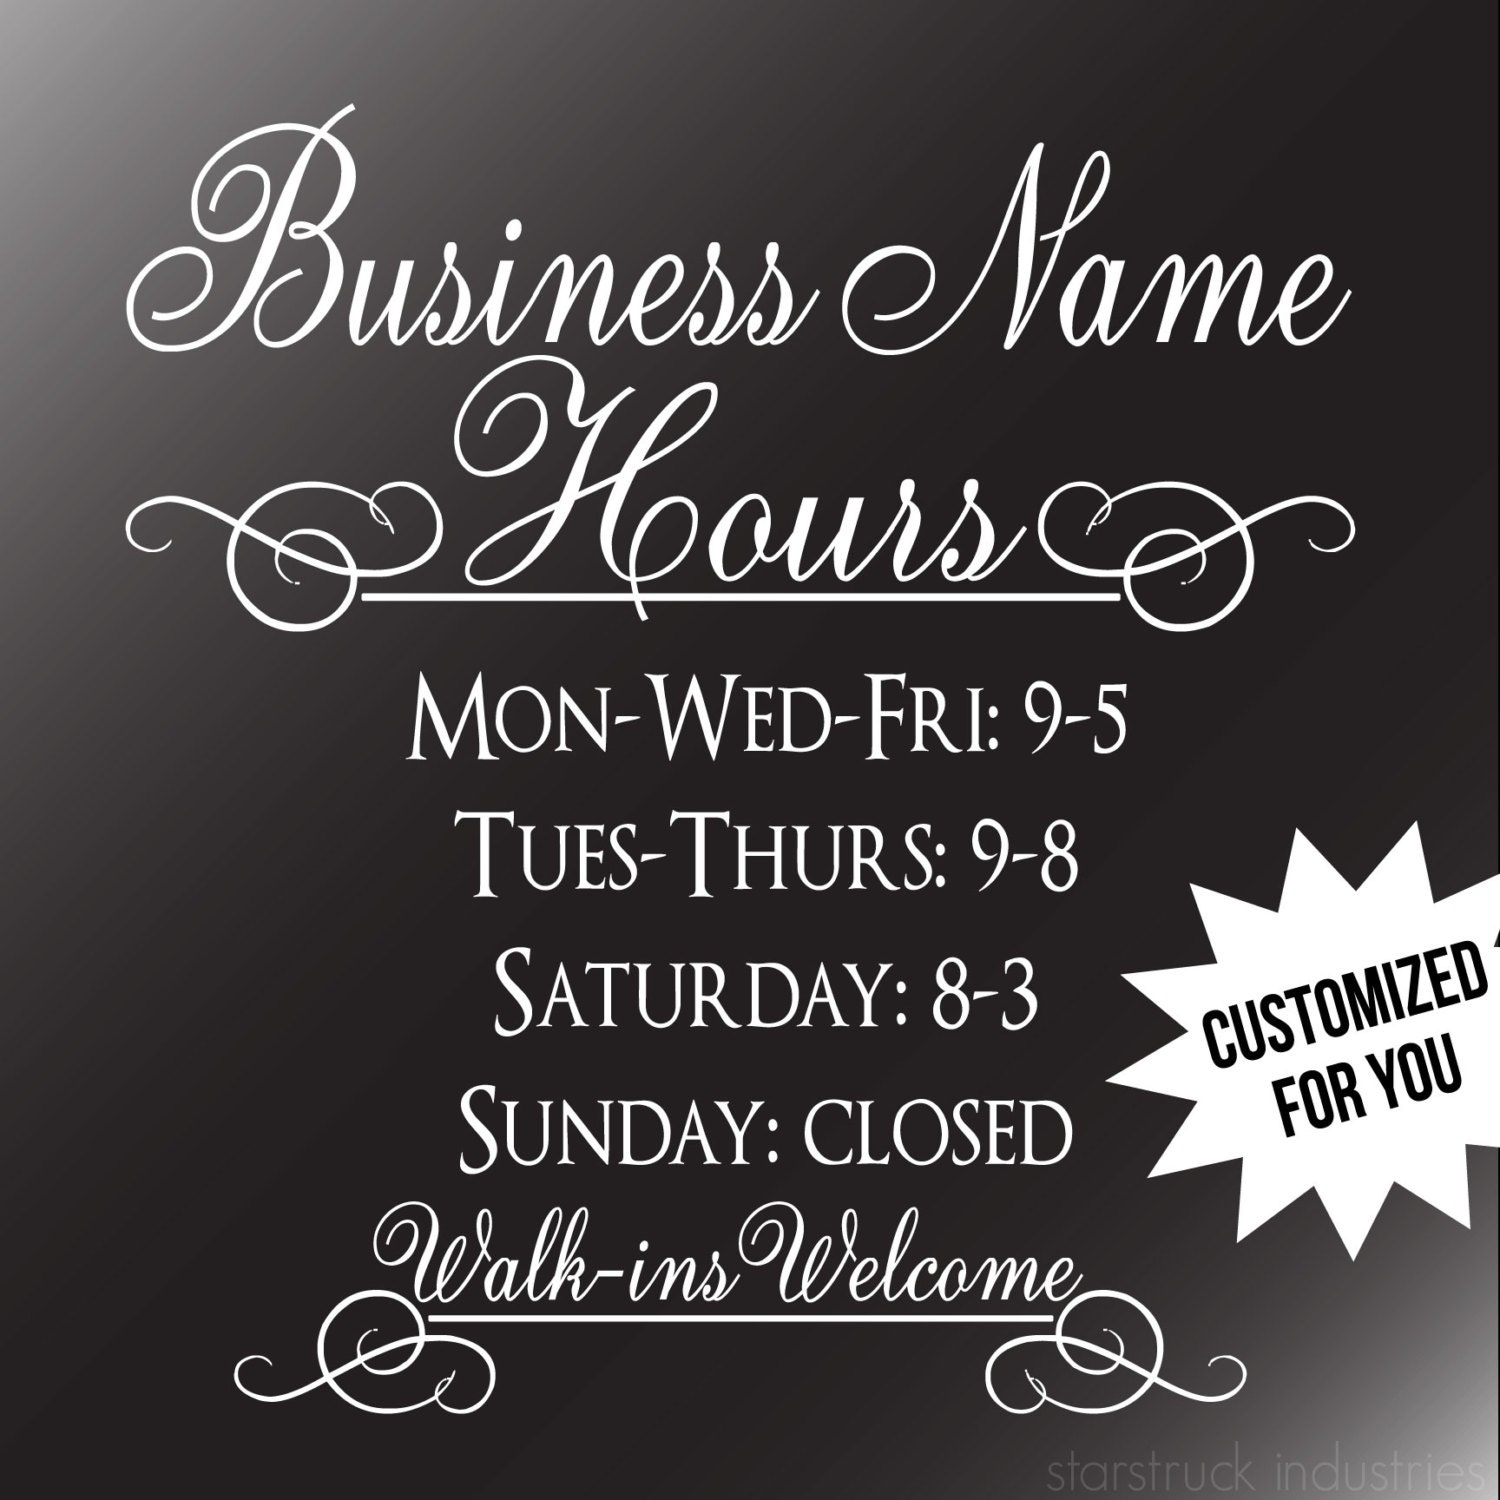 Business Hours Decal Storefront Window Business Hours Decal